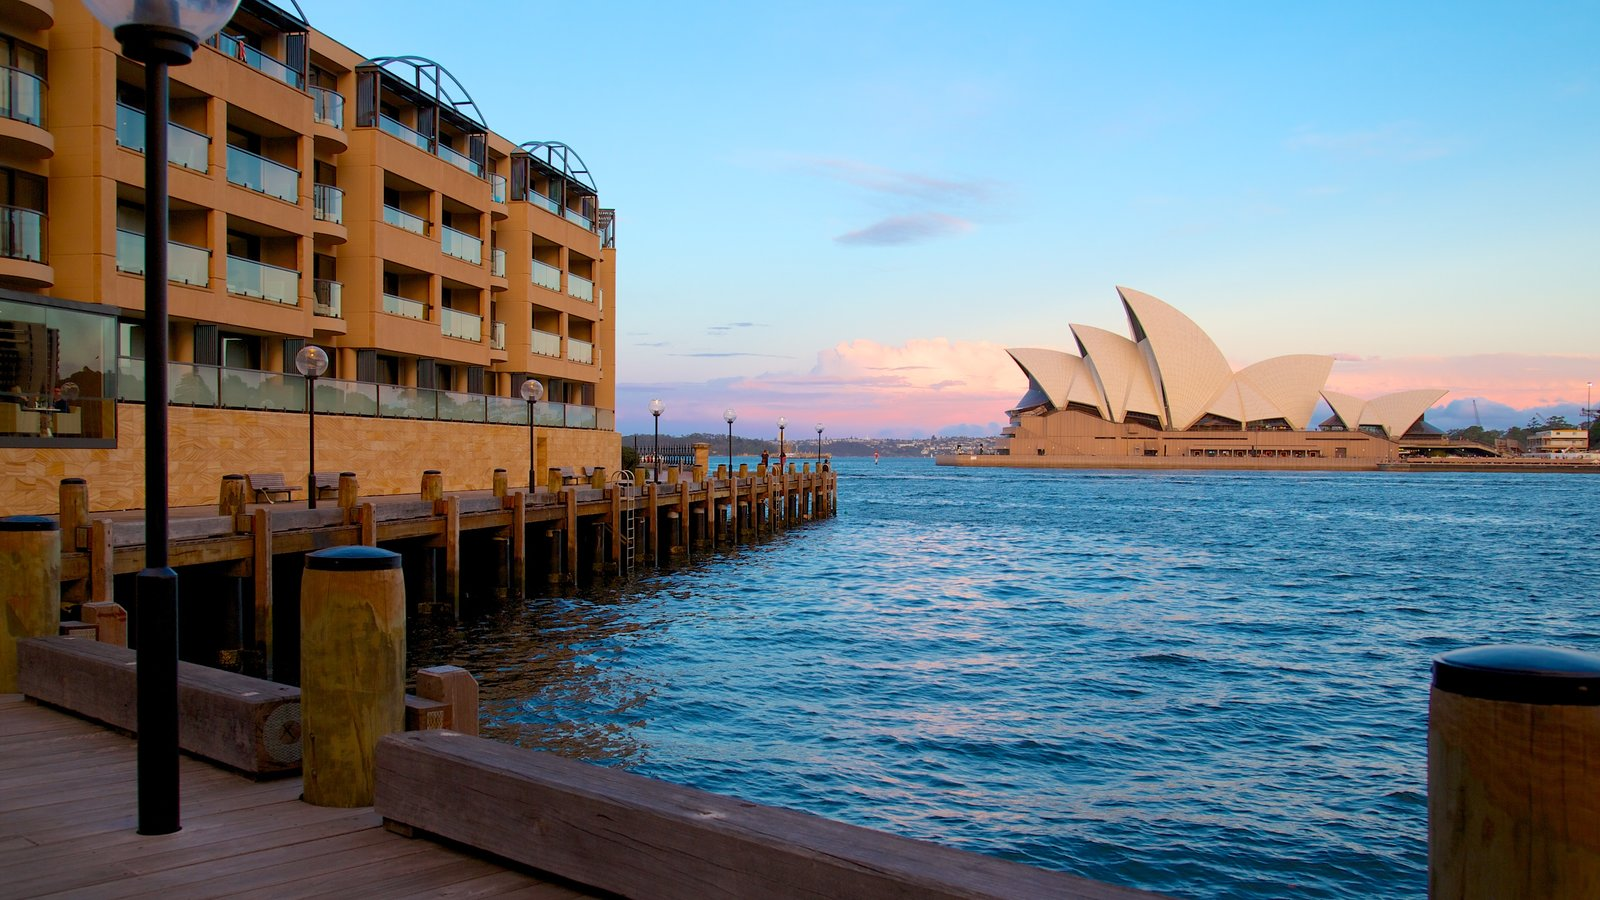 Sydney Opera House showing modern architecture and a bay or harbor